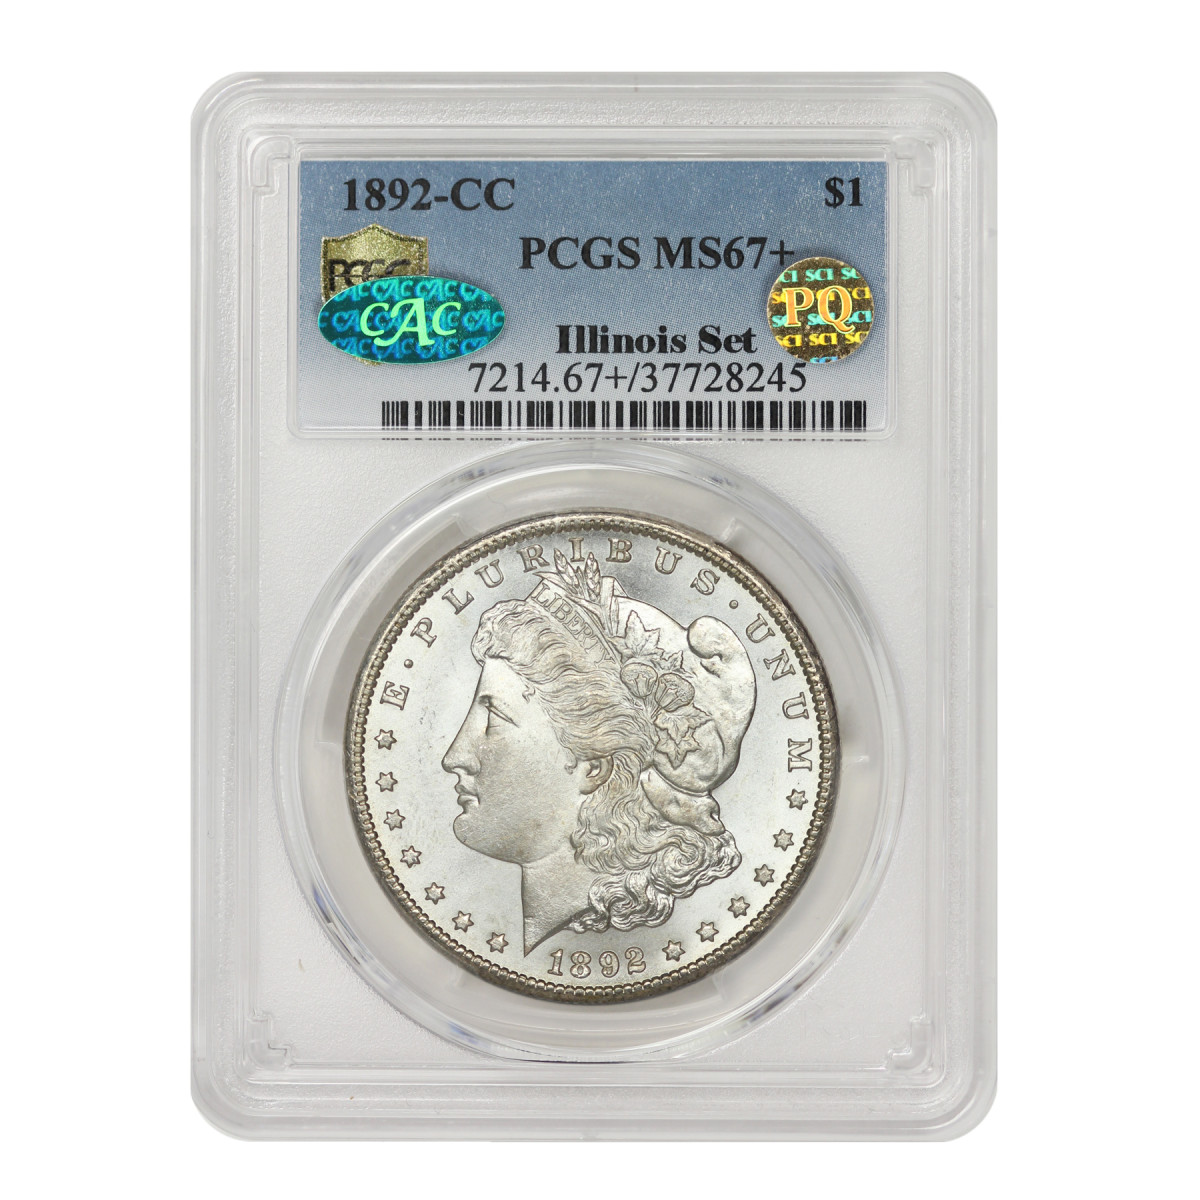 The finest known 1892-CC, graded PCGS MS67+ CAC/PQ with none graded higher, is one of the highlights of the 117-coin, all-time finest Illinois Set Collection of Morgan dollars now being offered intact for $9.7 million. (Photo courtesy of Mint State Gold by Stuppler and Company.)